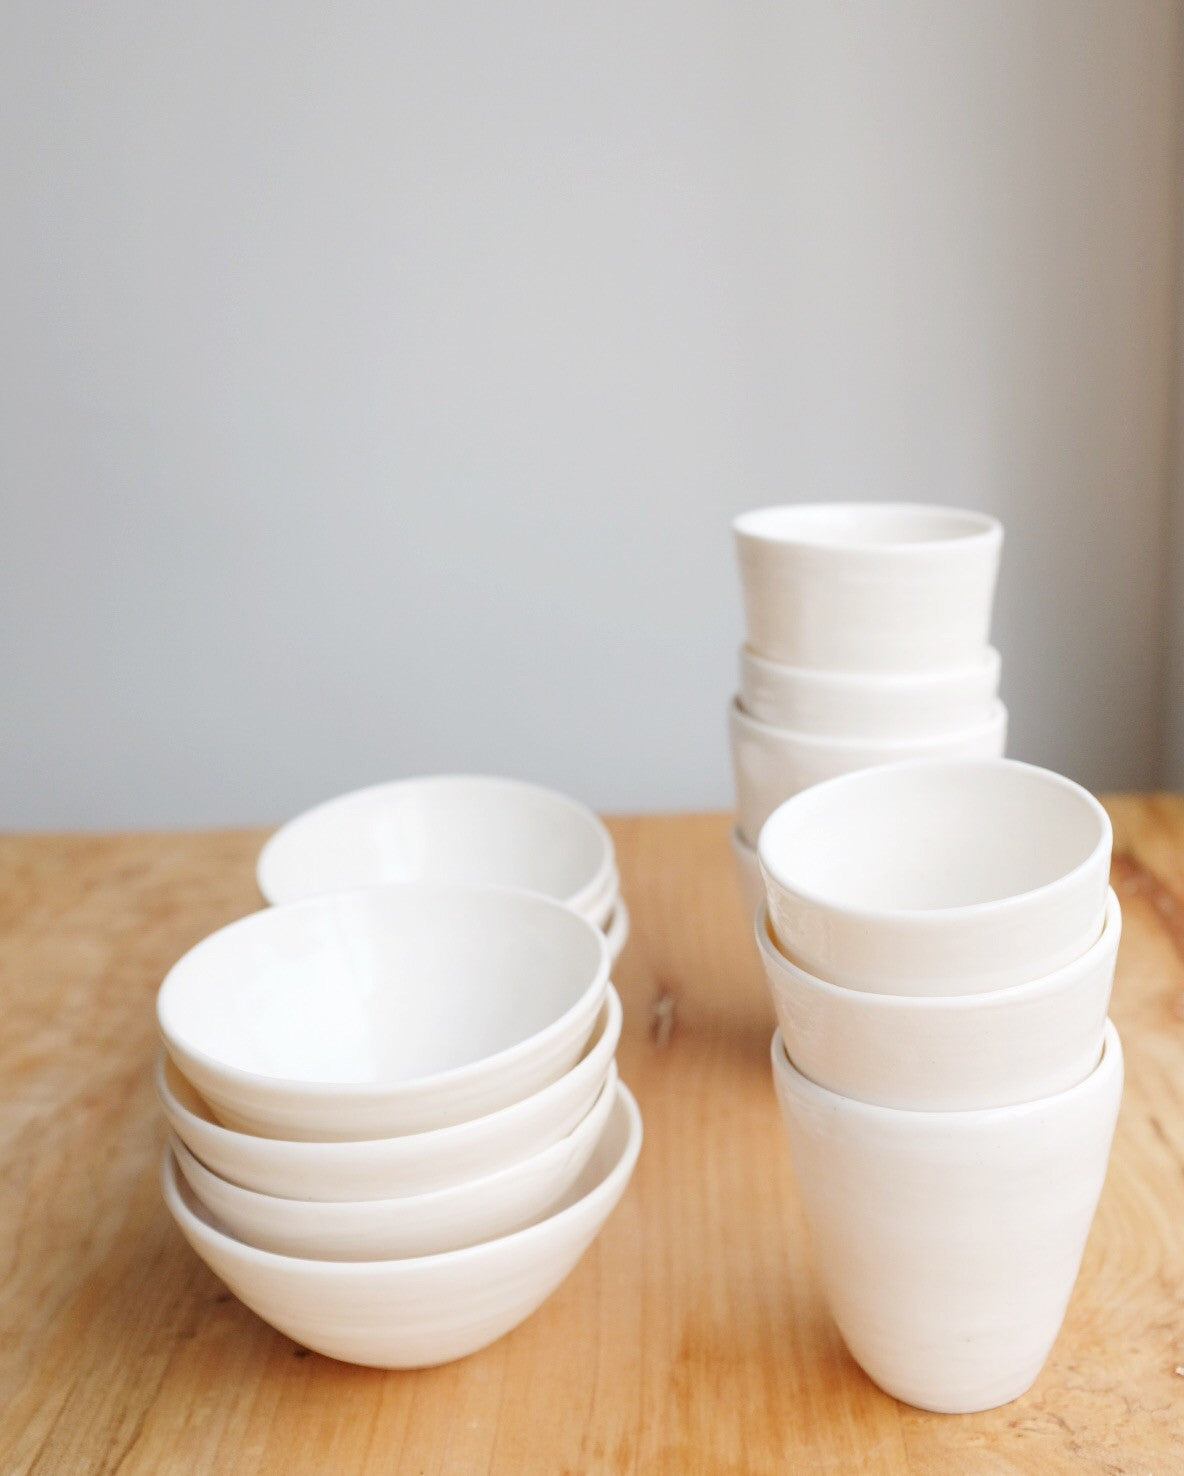 8 piece porcelain set